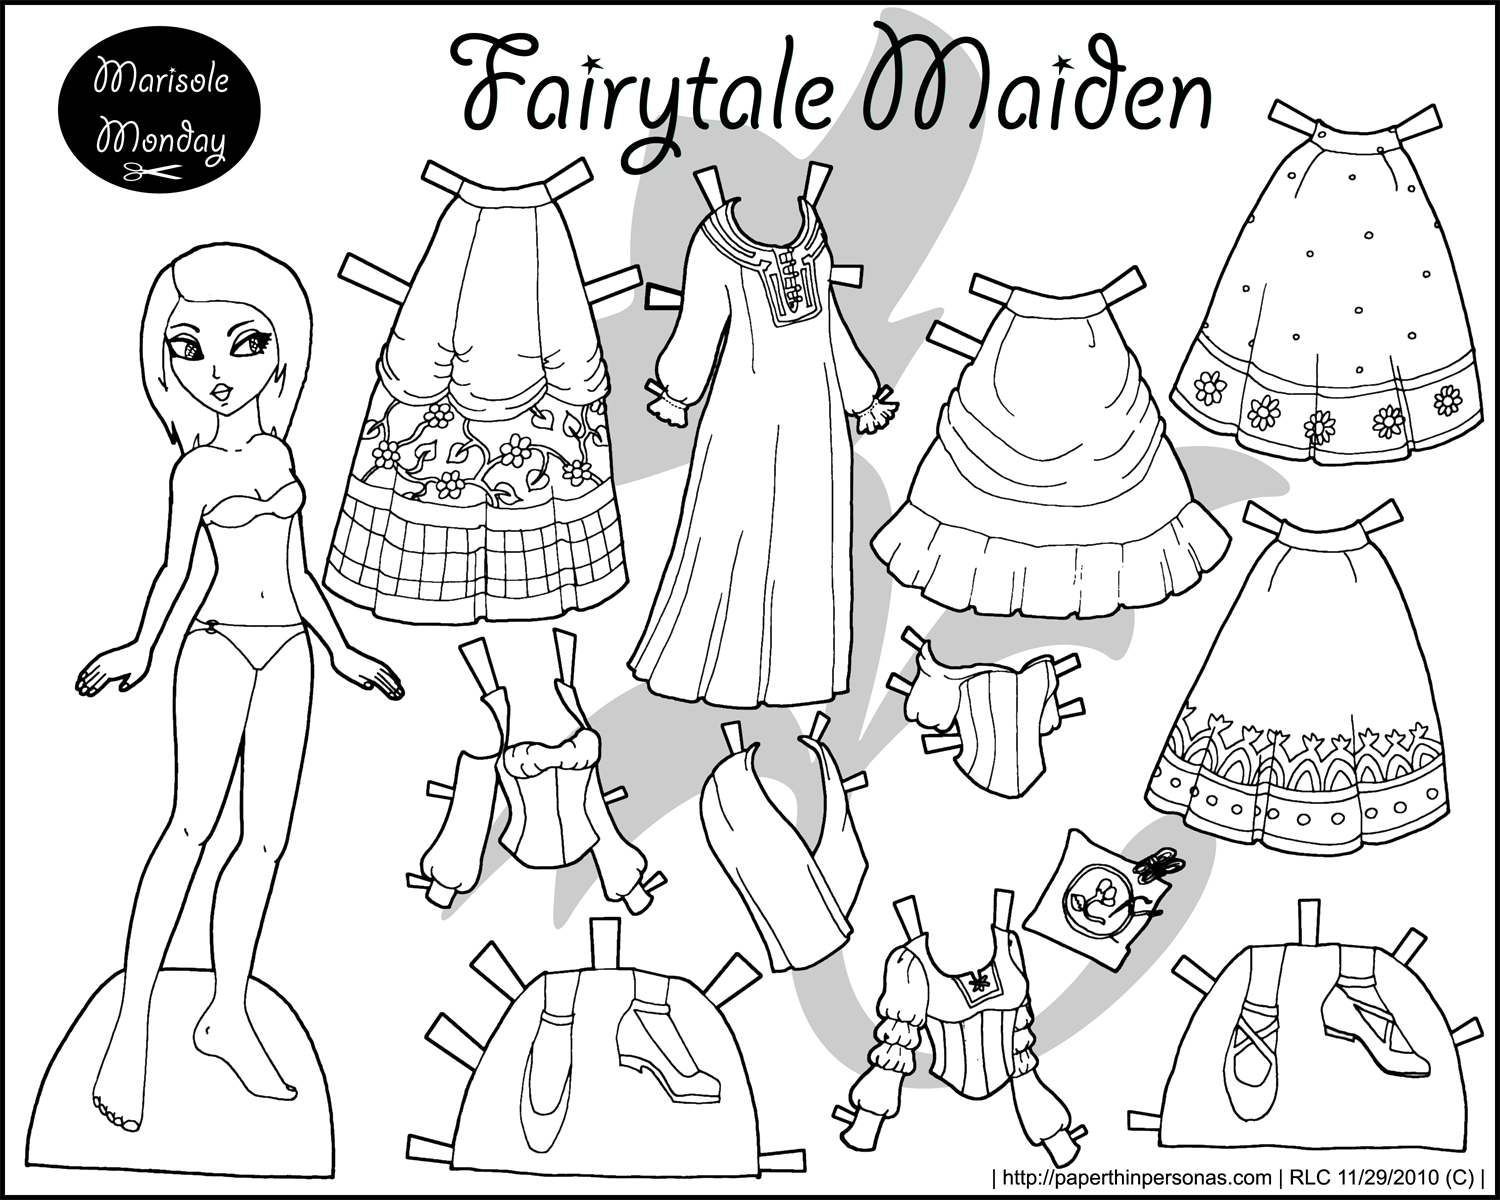 a fairy tale maiden black and white princess coloring page to print and dress up - Print And Color